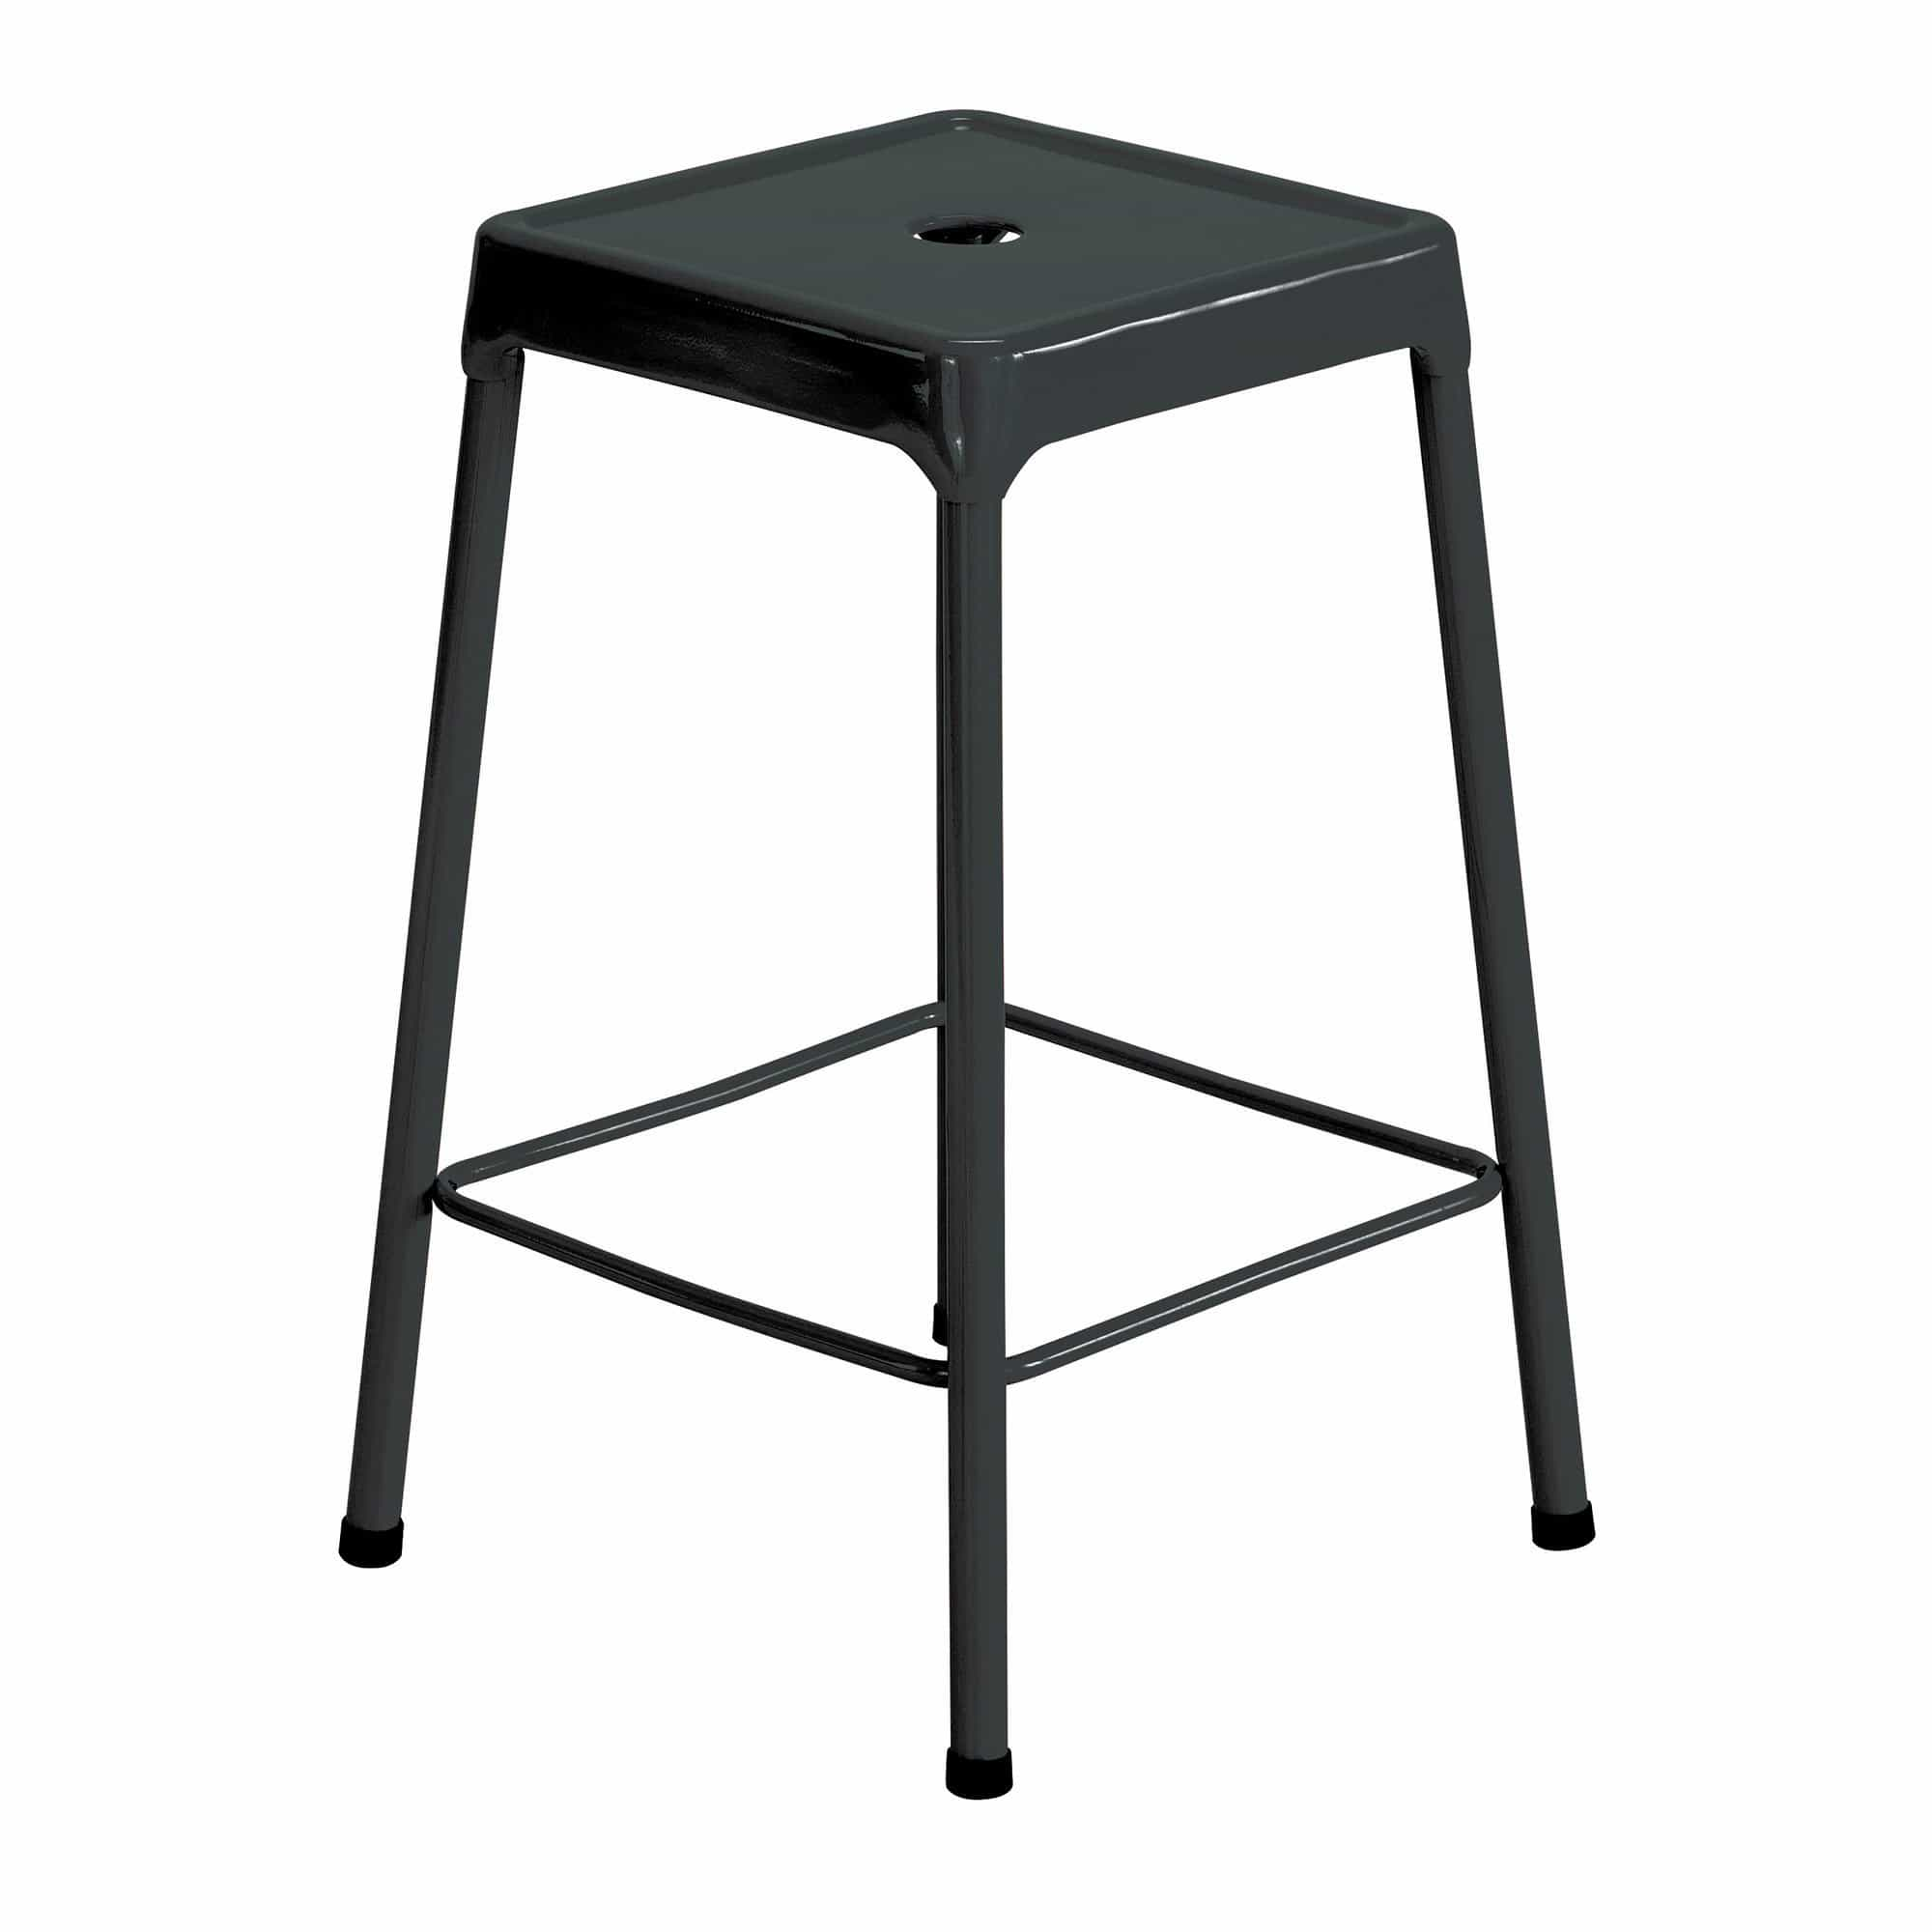 bedinhome - Industrial Seating 250 lbs Weight Capacity 25 H Steel Counter Height Stool - Safco - Counter Height Stool